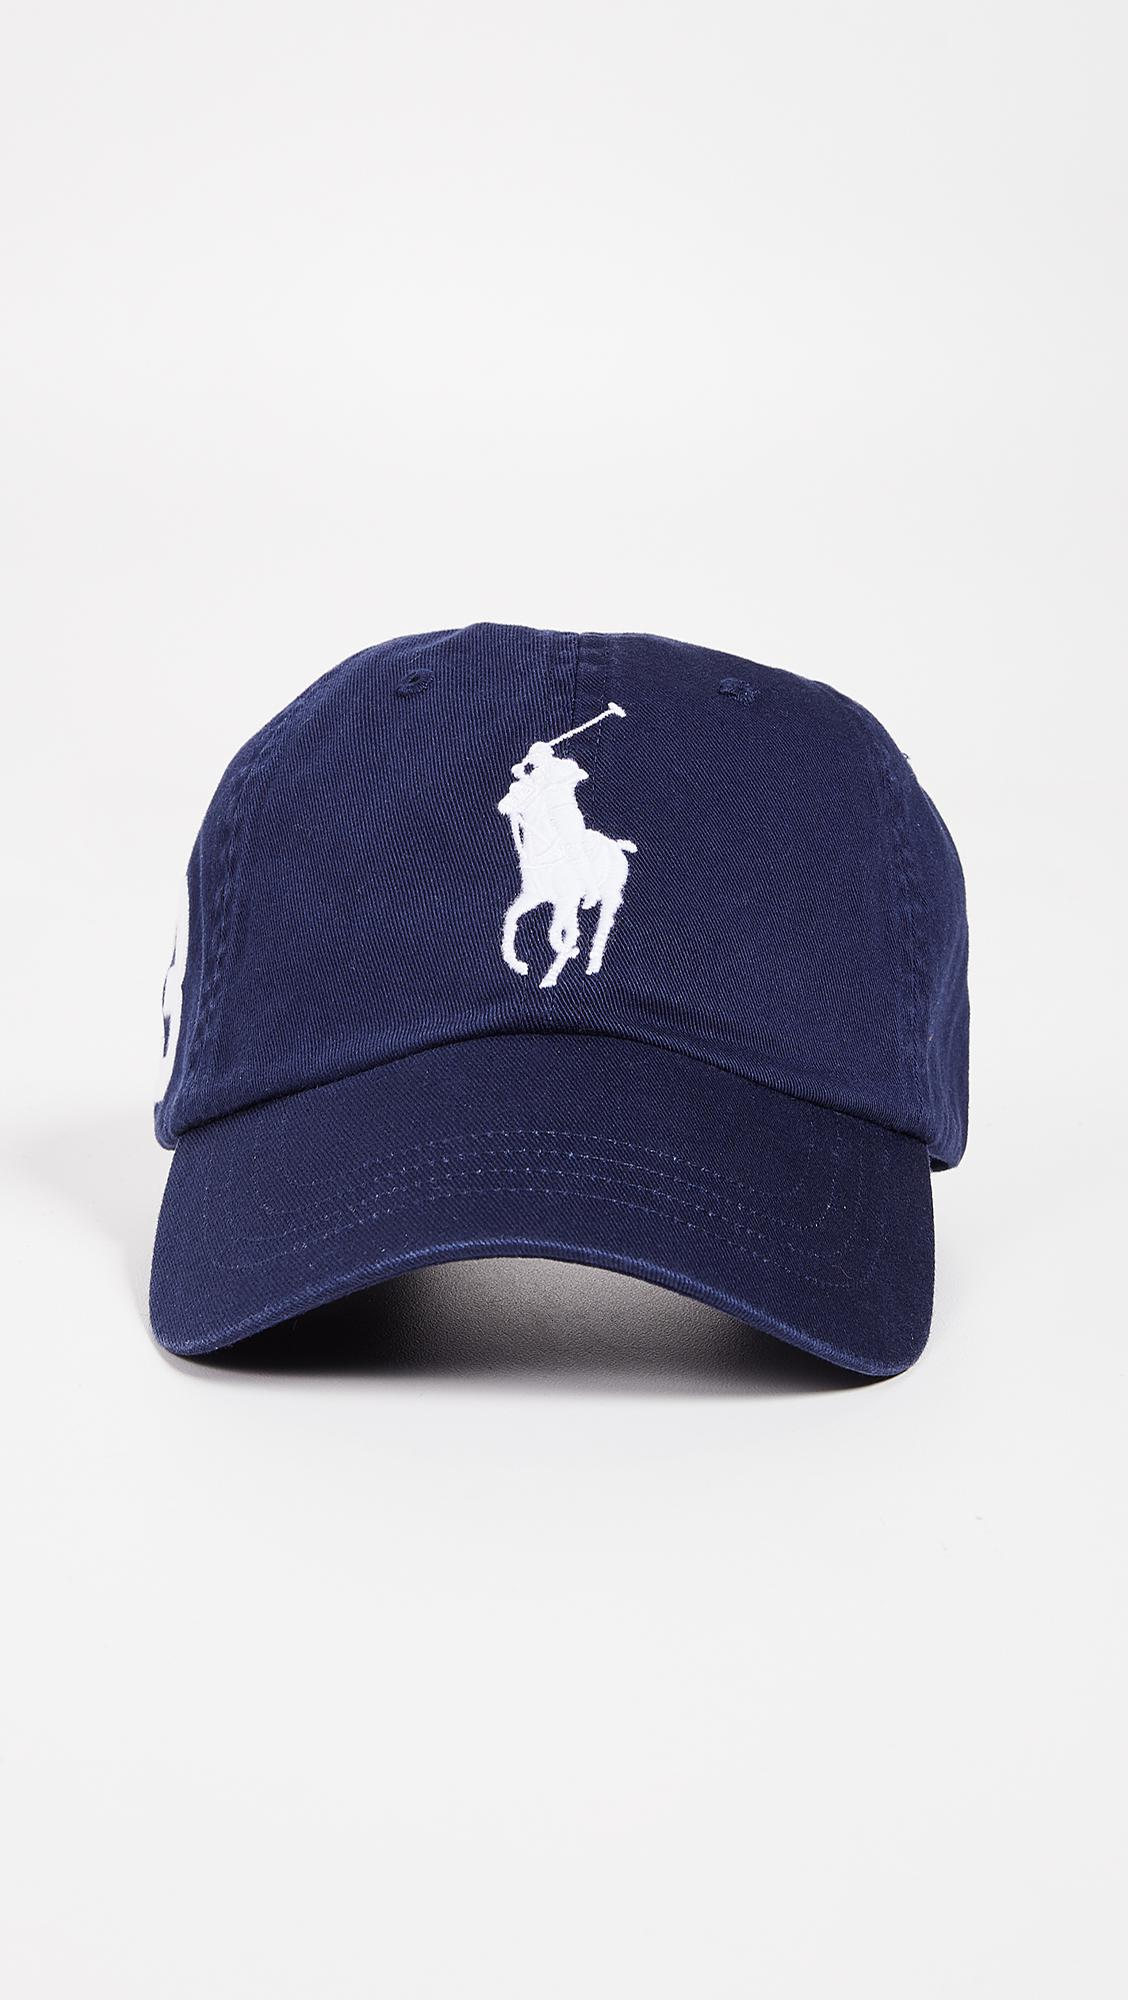 ff769709420 Polo Ralph Lauren Big Pony Cap in Blue for Men - Lyst